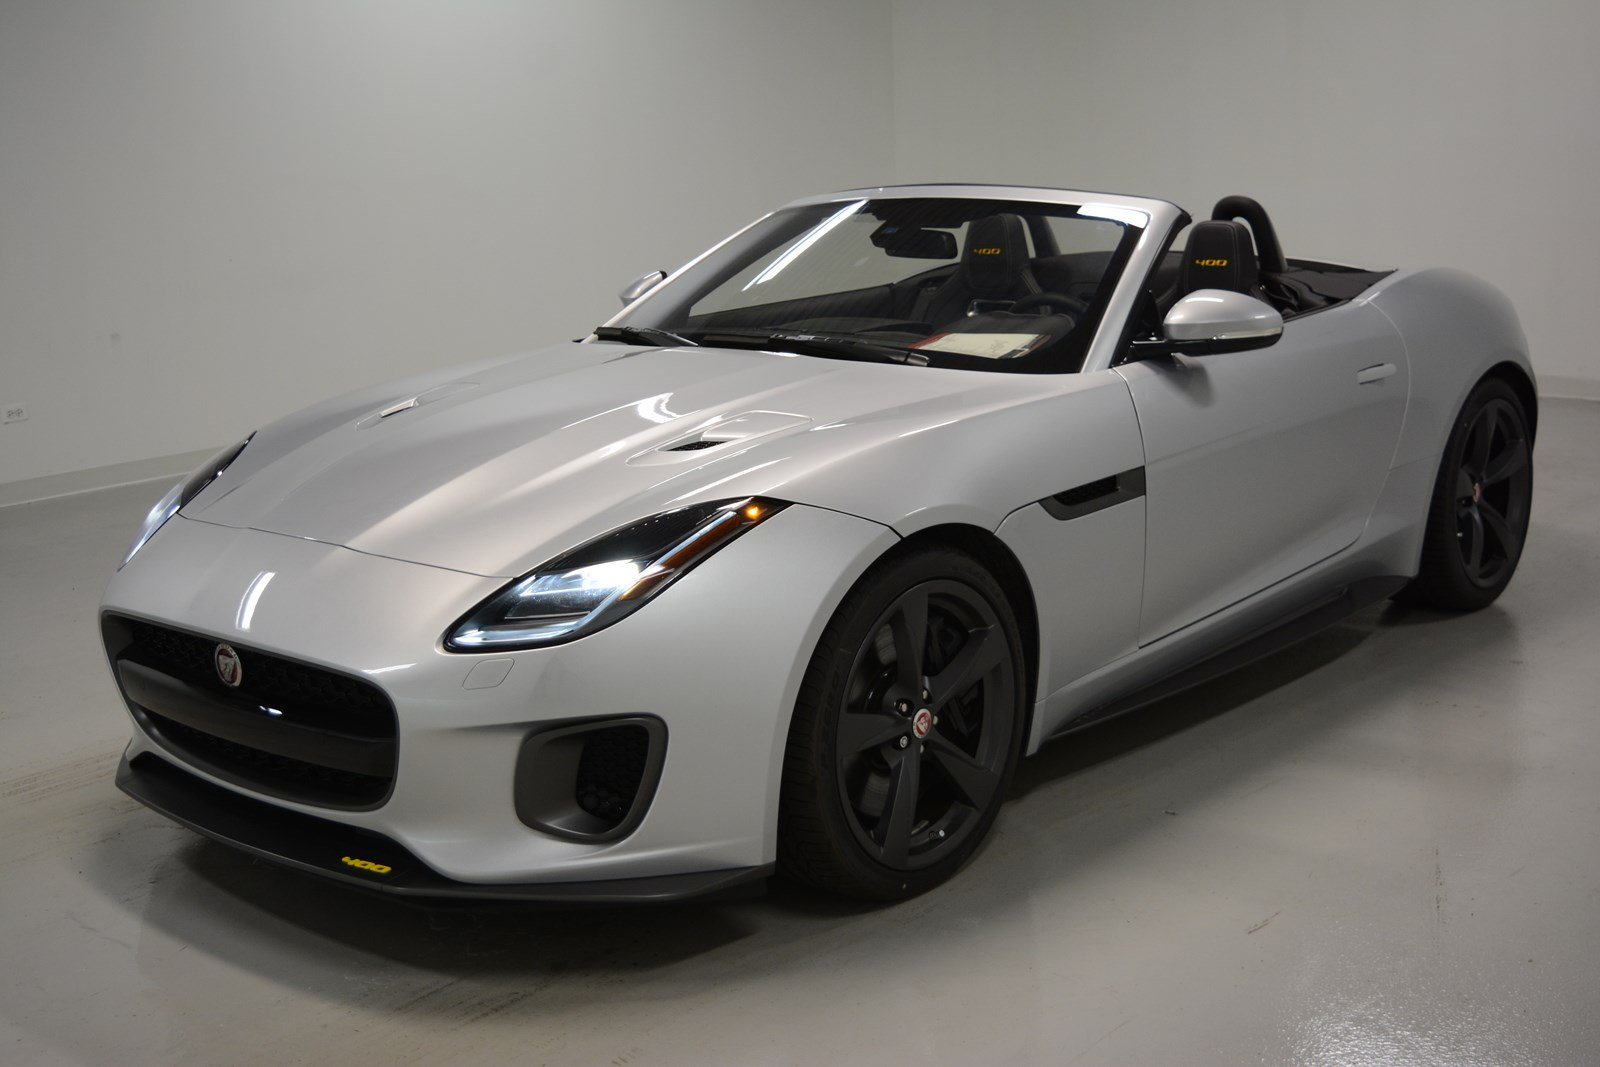 new 2018 jaguar f type 400 sport 4dr in elmhurst j1644 jaguar elmhurst. Black Bedroom Furniture Sets. Home Design Ideas